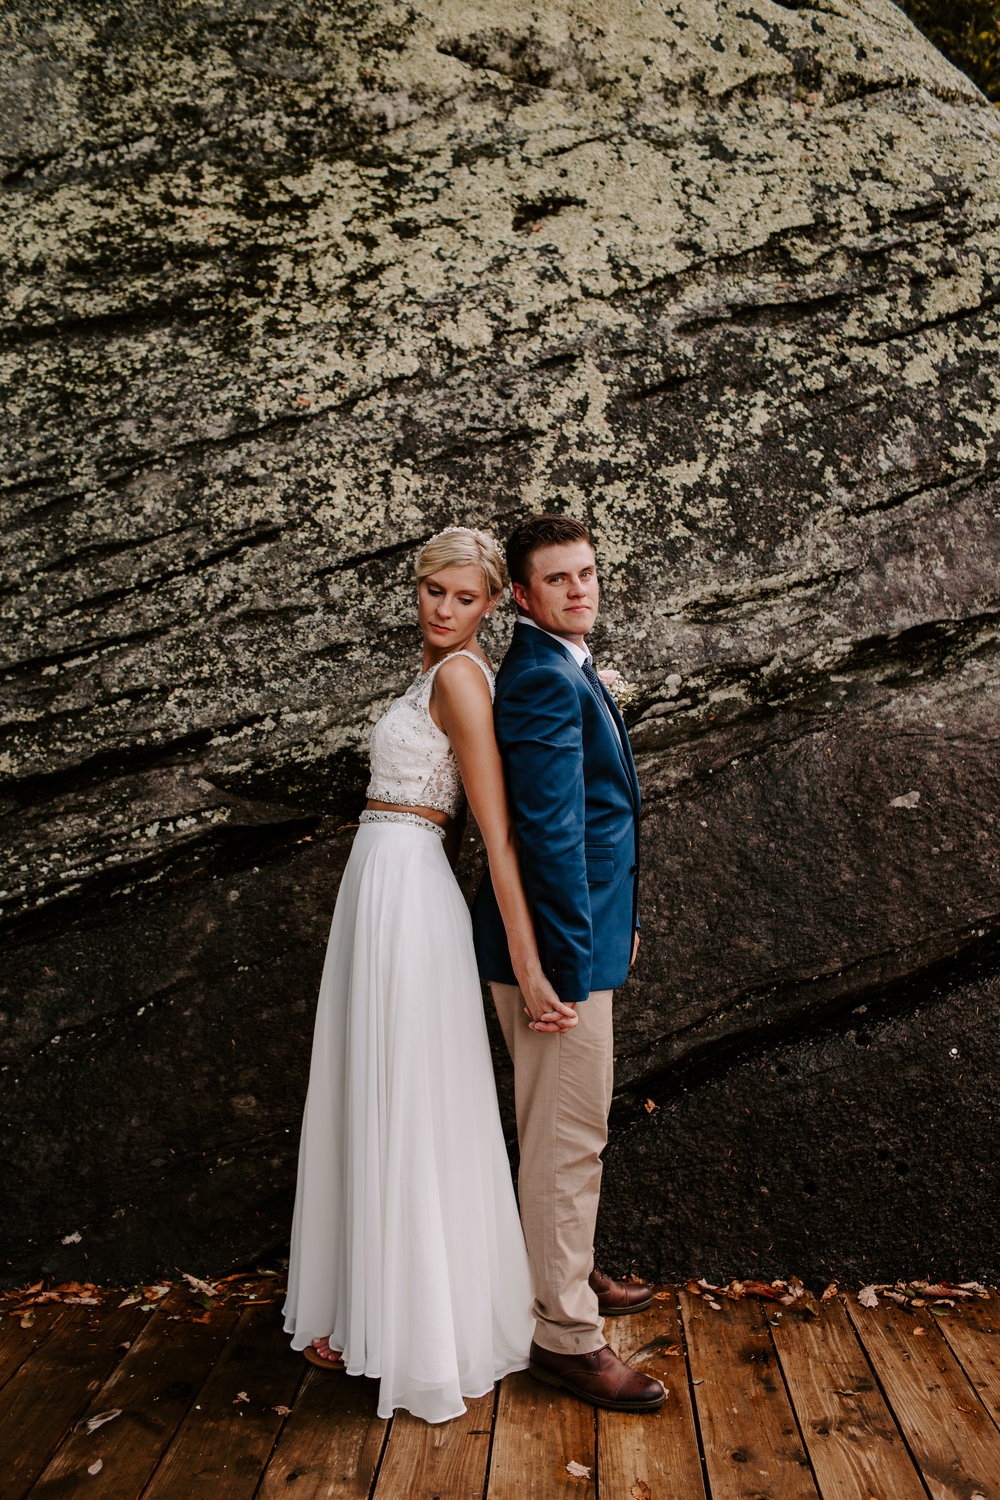 Miranda&braedon_ashevilleelopement (37 of 101).jpg